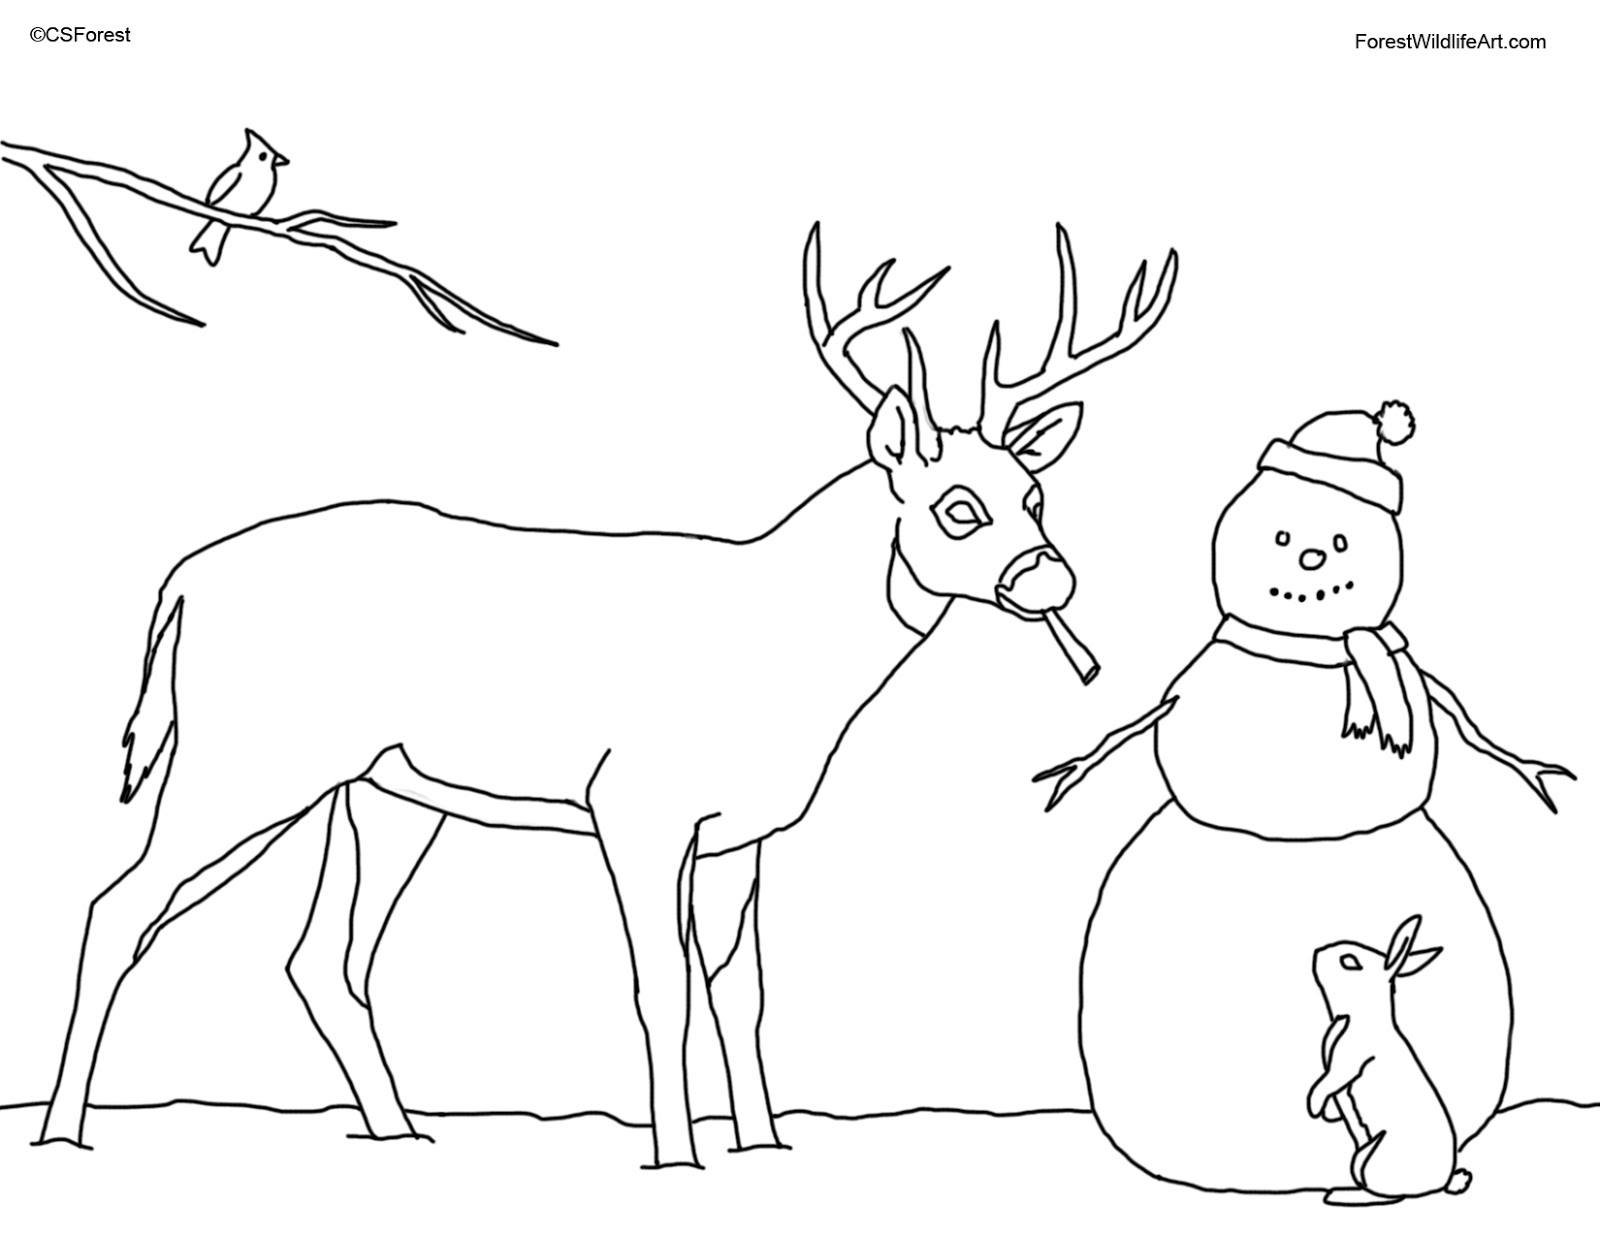 forest wildlife art coloring book page for kids christmas deer and - Kids Painting Book